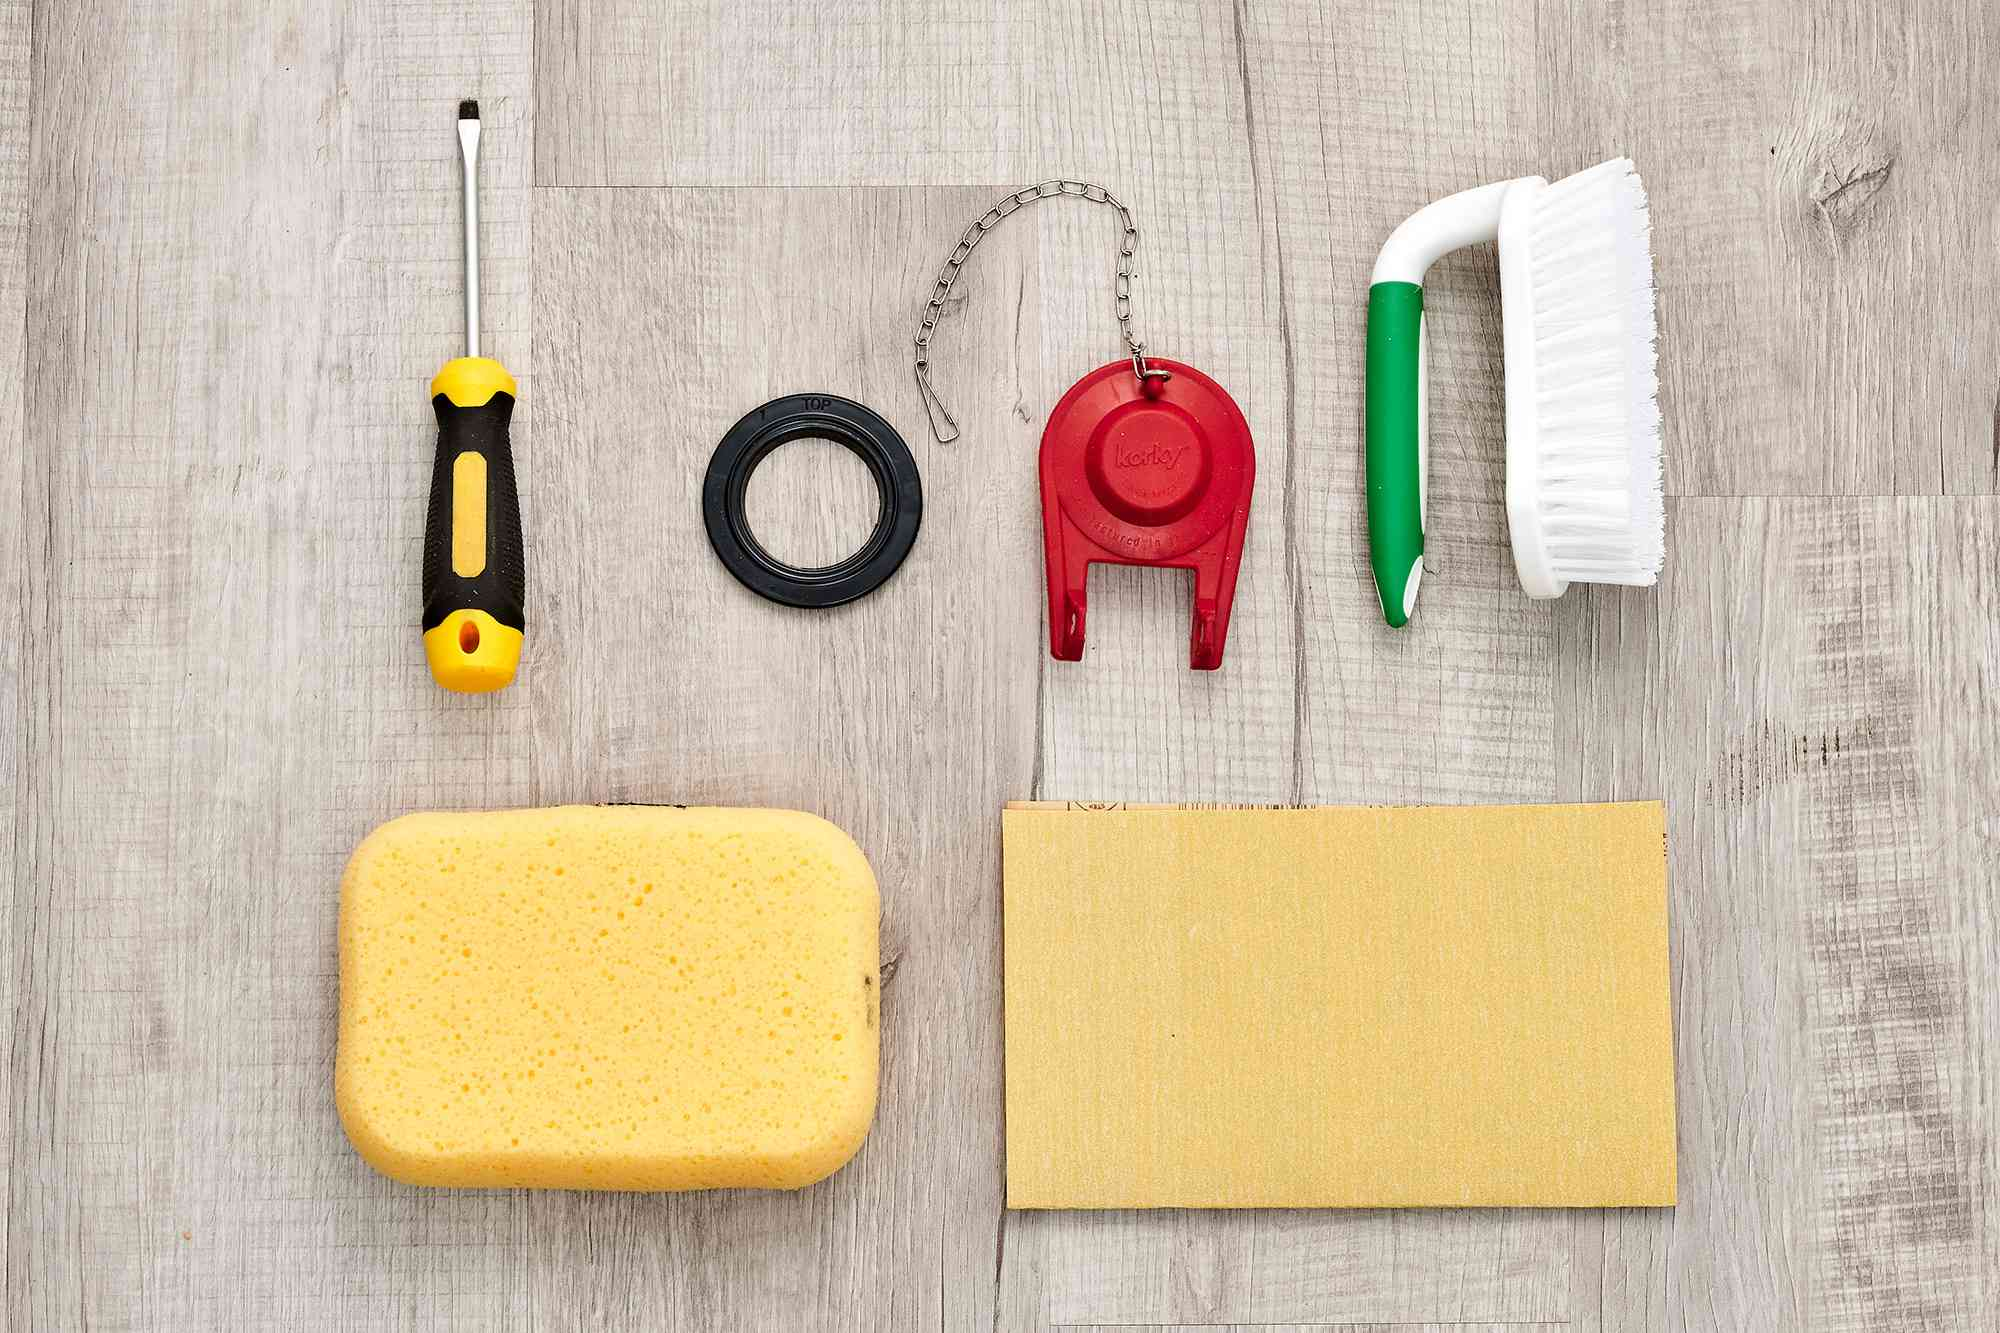 Materials and tools to replace a leaky toilet flush valve